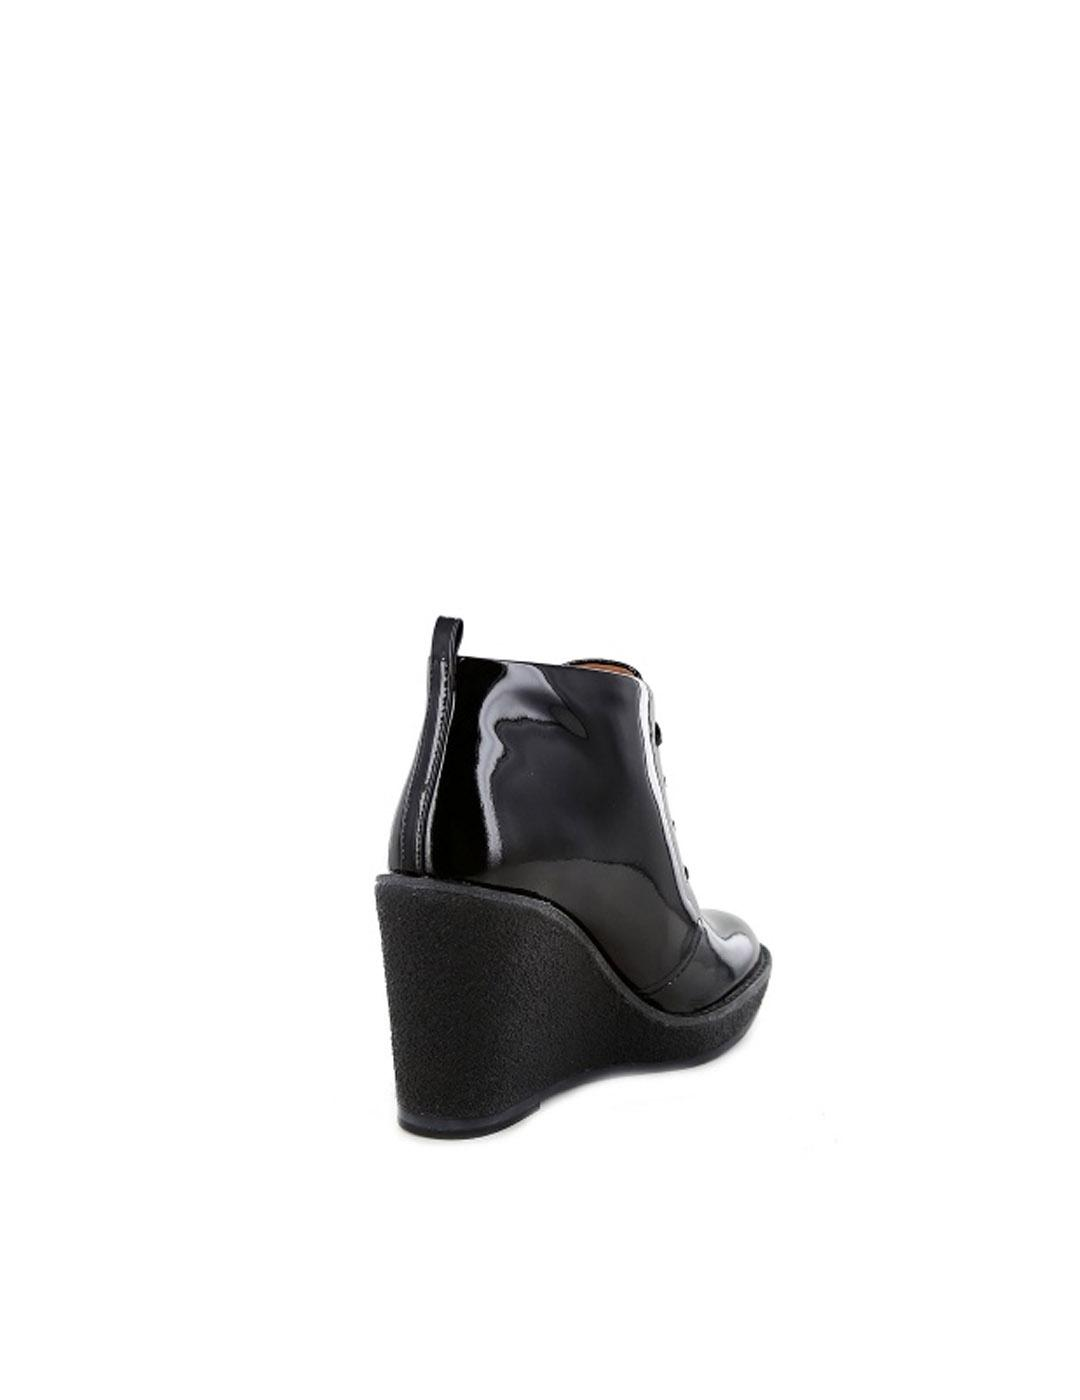 Botines Marc by Marc Jacobs negros de charol